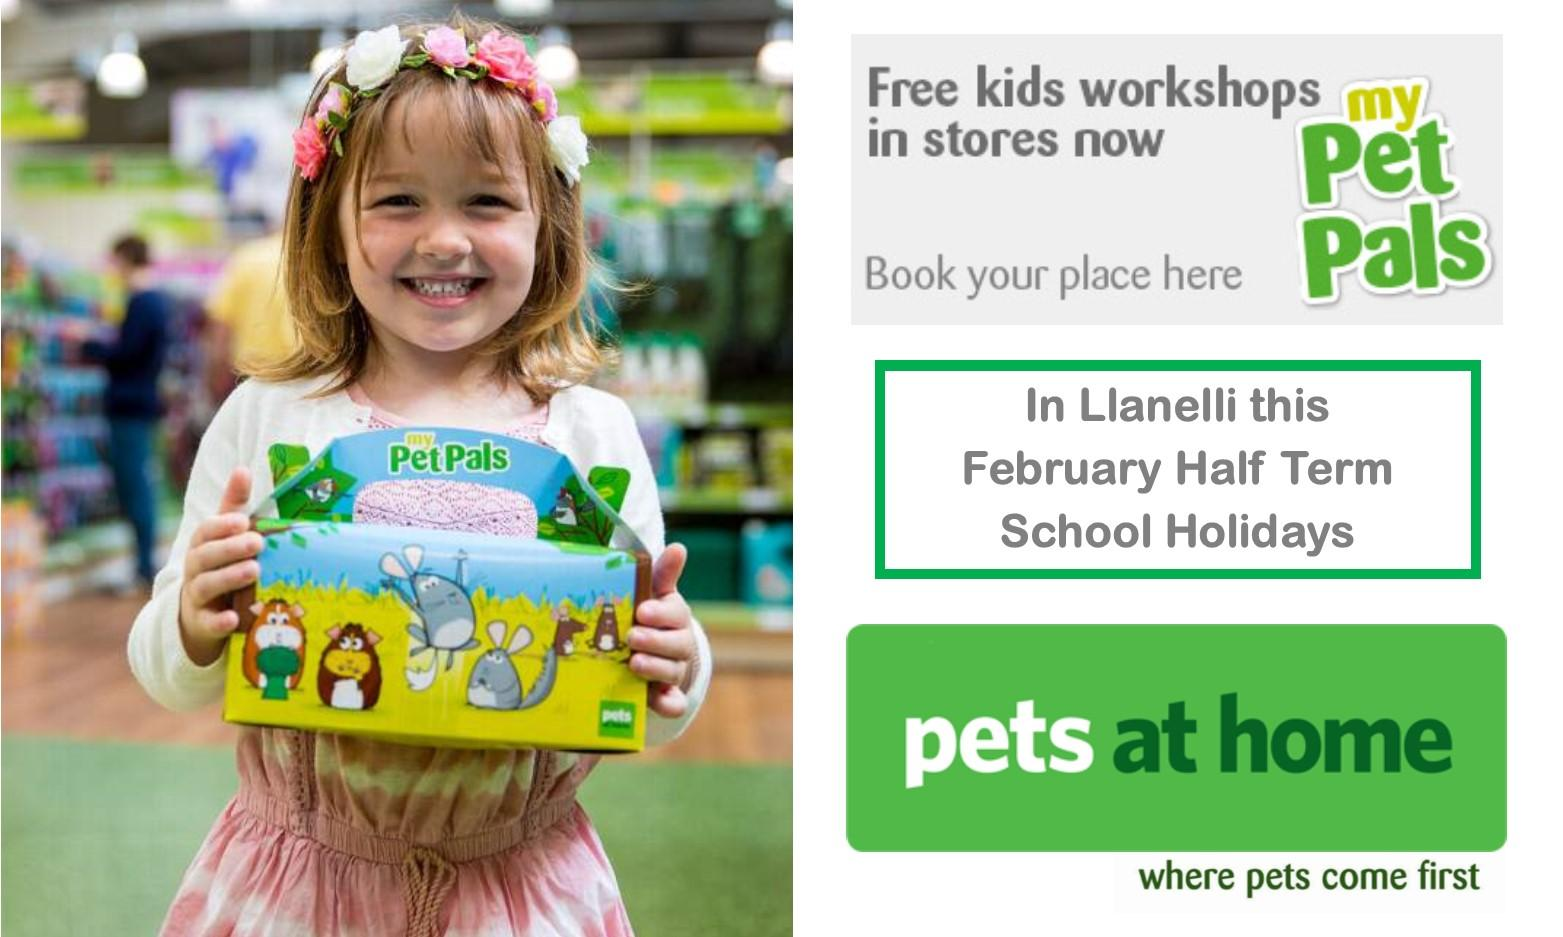 Super Small Furries Pets at Home Workshop in Llanelli